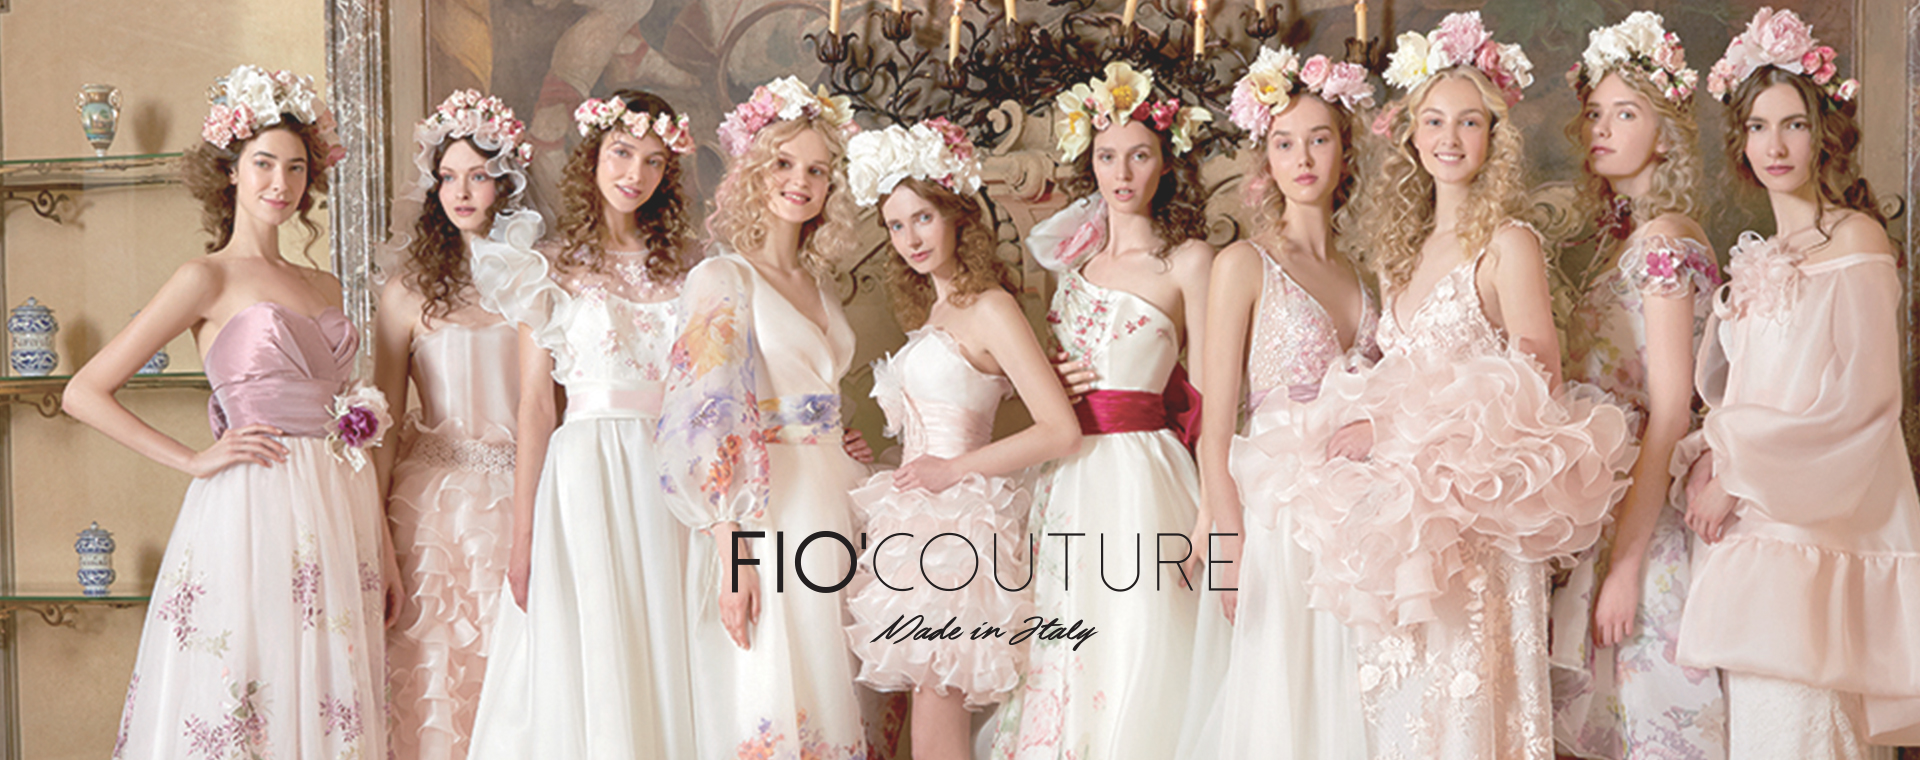 Fio Couture